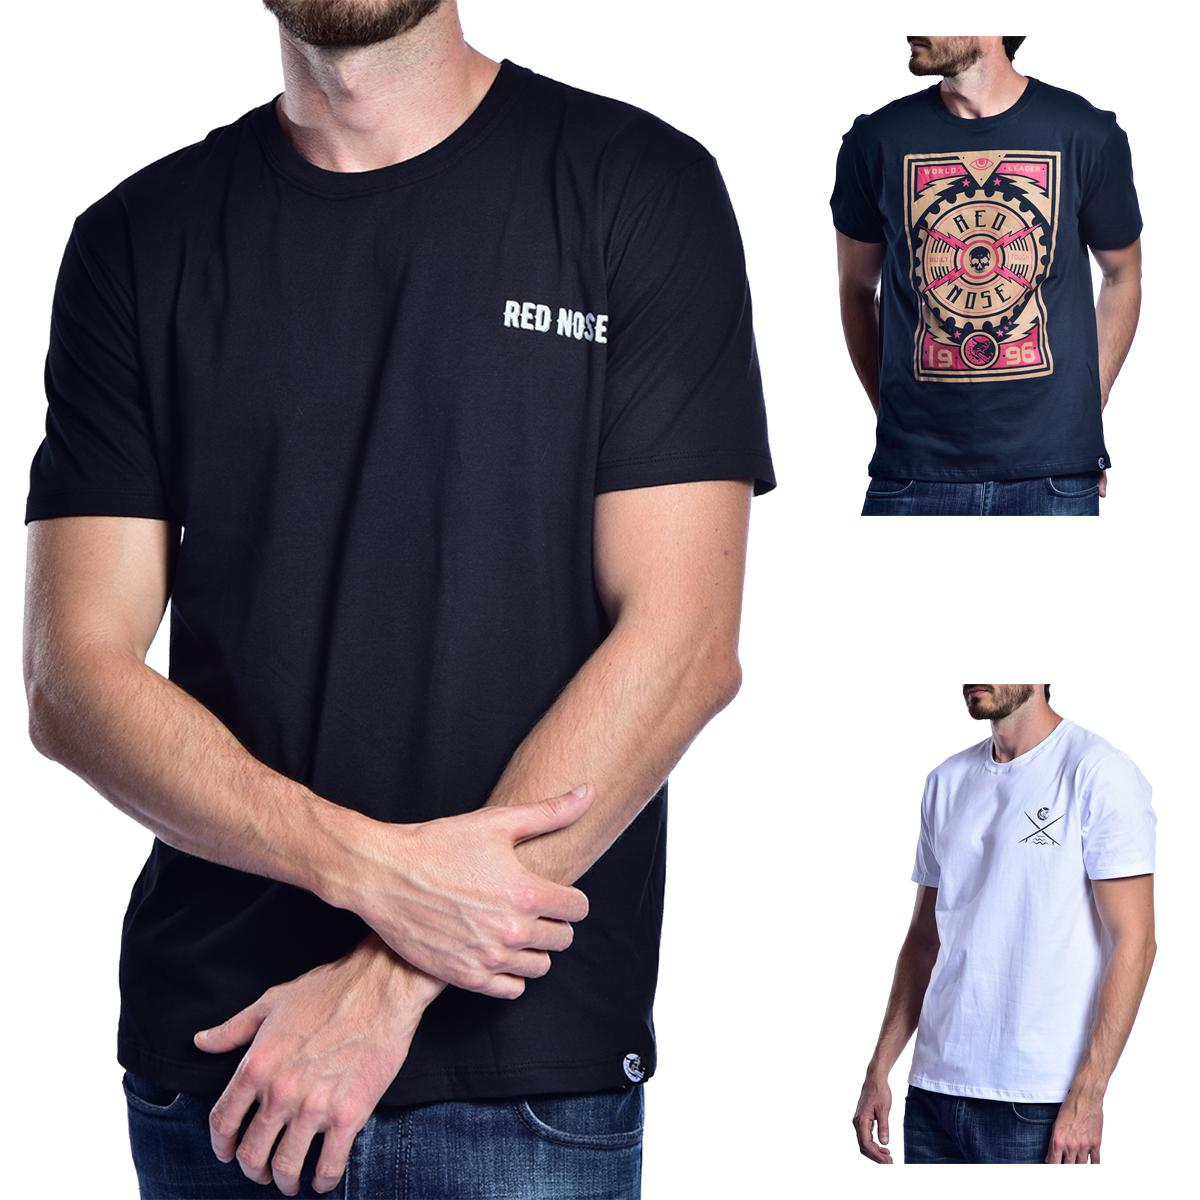 KIT 3 Camisetas Red Nose  - Preto e Azul e Branco P